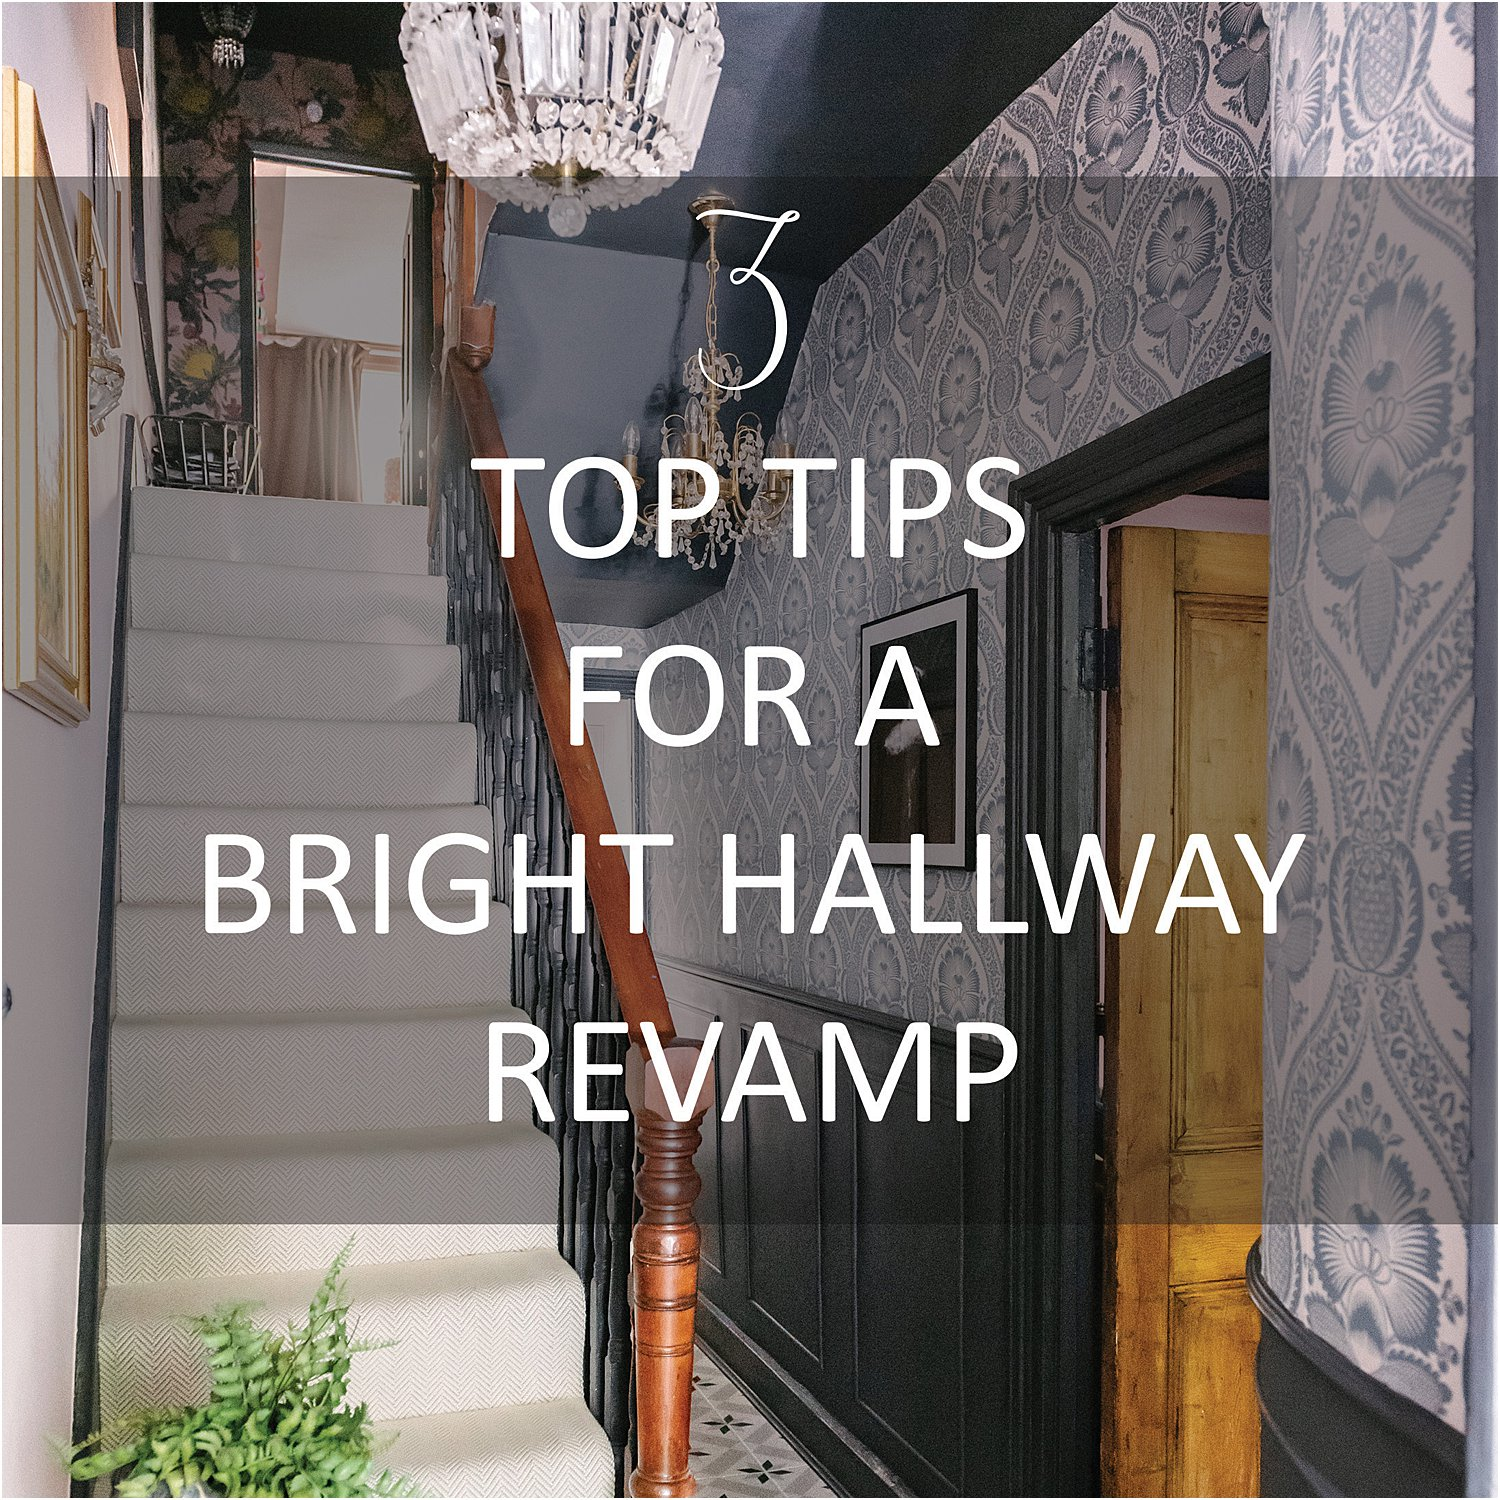 3-top-tips-for-a-bright-hallway-revamp-designer-carpet-layered-home-lily-sawyer-interiors